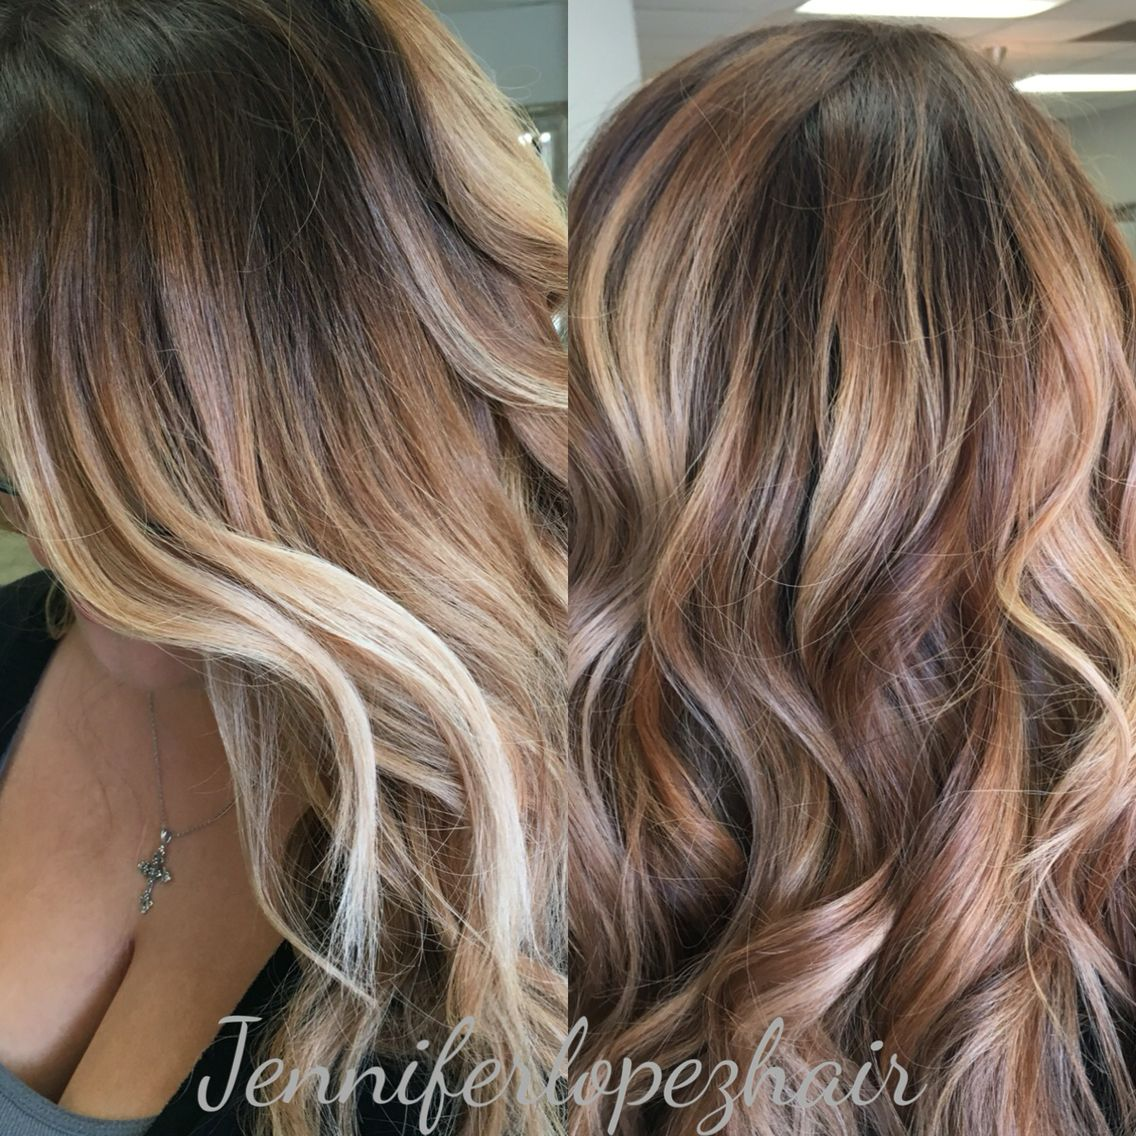 ombre balayage hair with violet and beige blonde dimensions my work hair artist hair. Black Bedroom Furniture Sets. Home Design Ideas